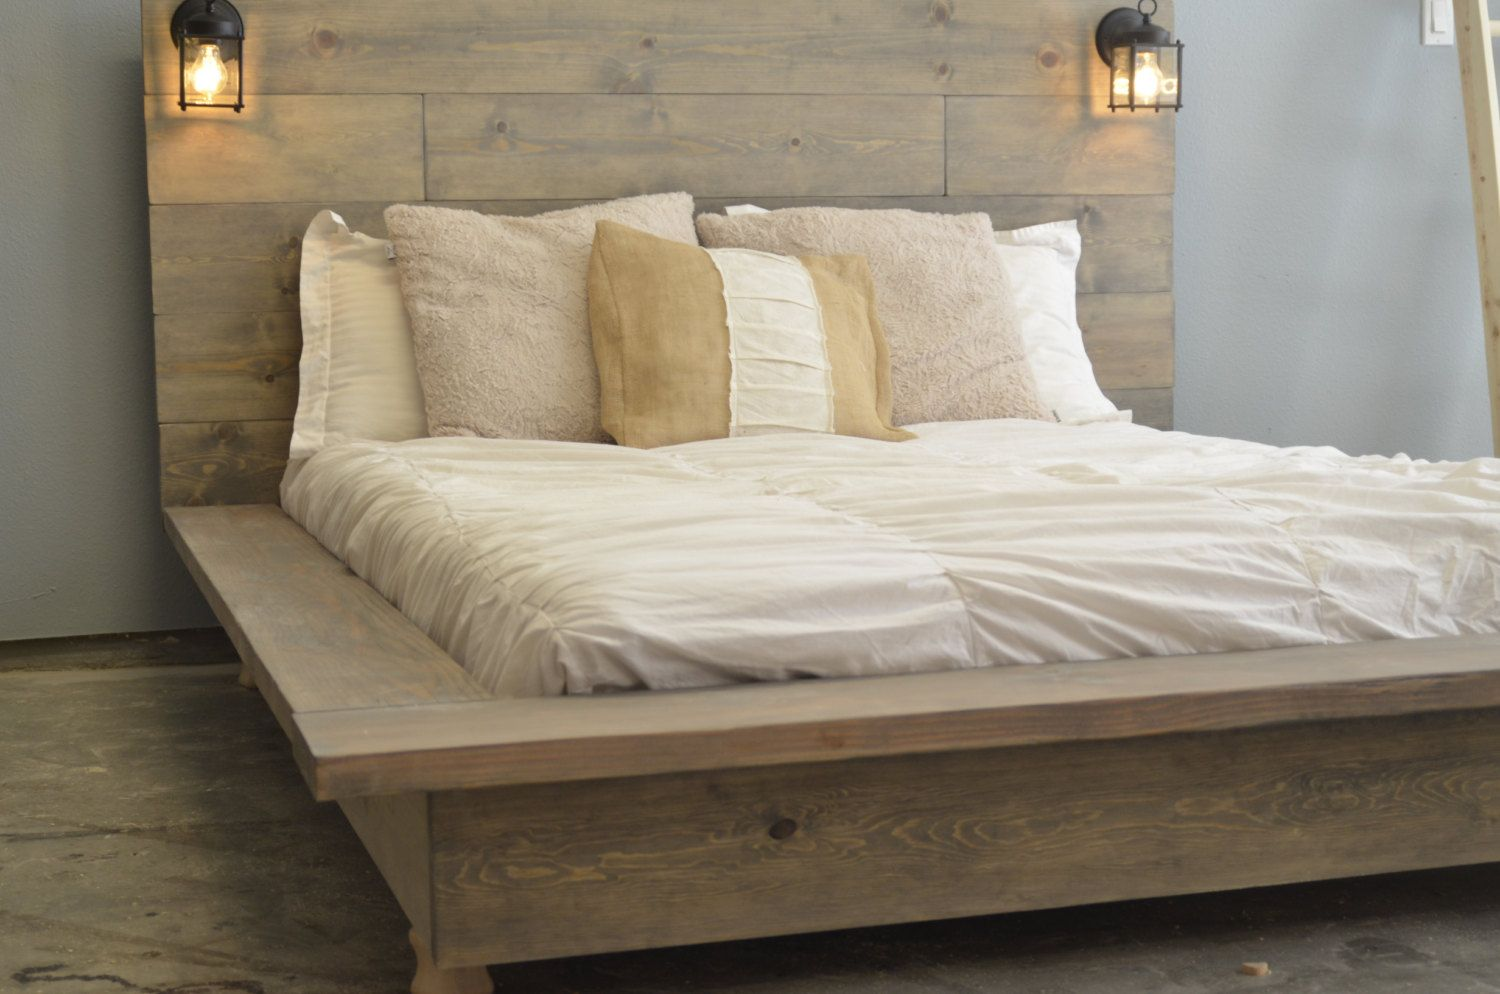 Cheap Wooden Bed Frames Floating Wood Platform Bed Frame With Lighted Headboard Quilmes